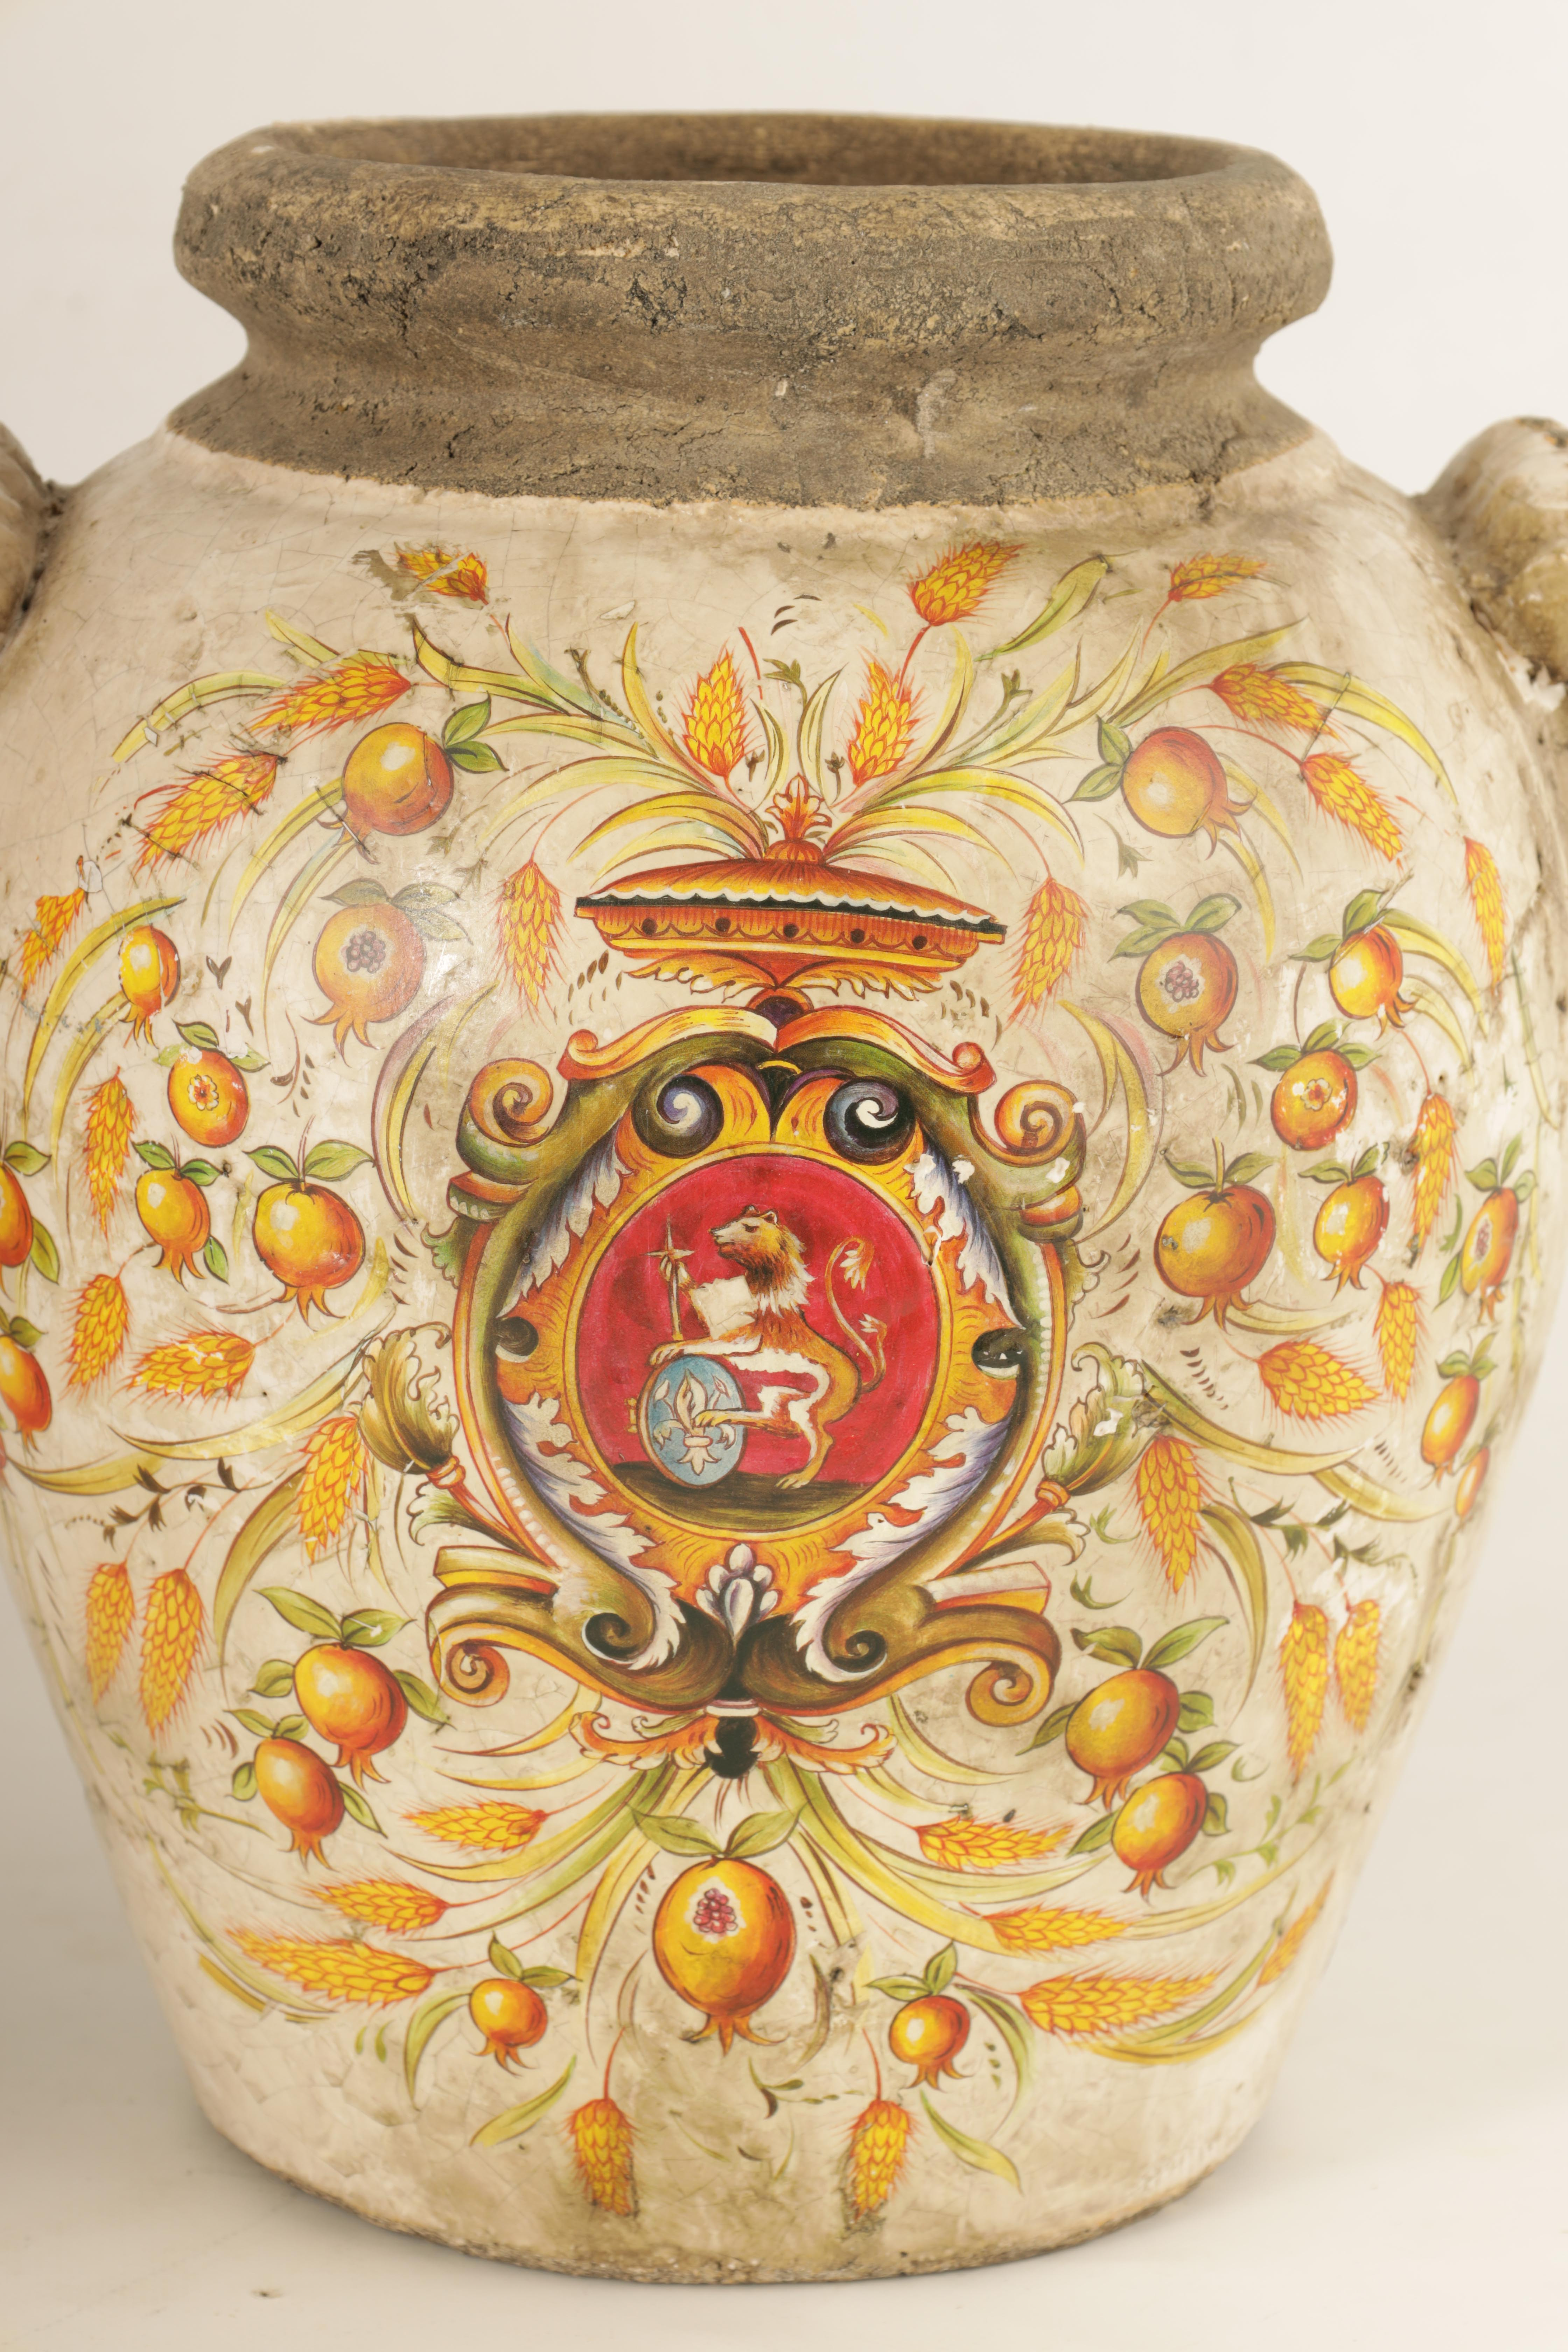 A PAIR OF EARLY ITALIAN EARTHENWARE ARMORIAL VASES with lion mask handles and painted armorials - Image 3 of 8